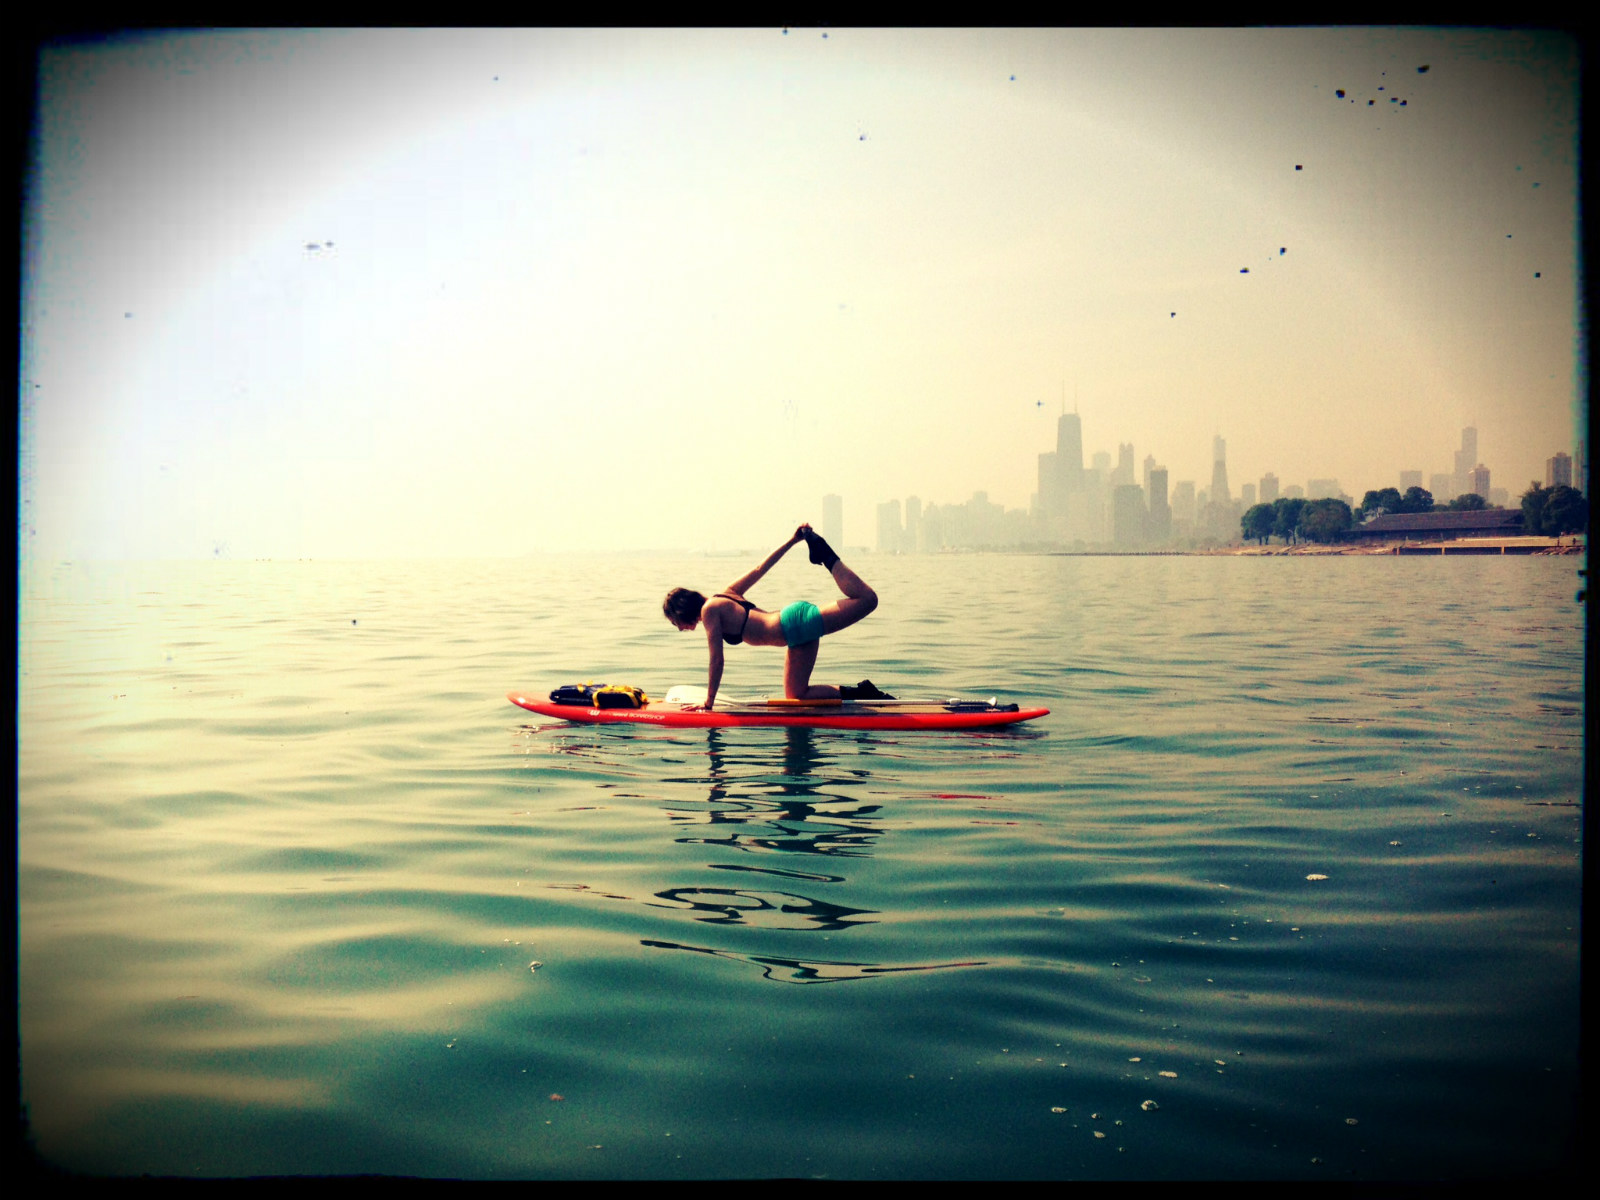 Vyaghrasana (Tiger Pose) on Lake Michigan. Chicago, IL.